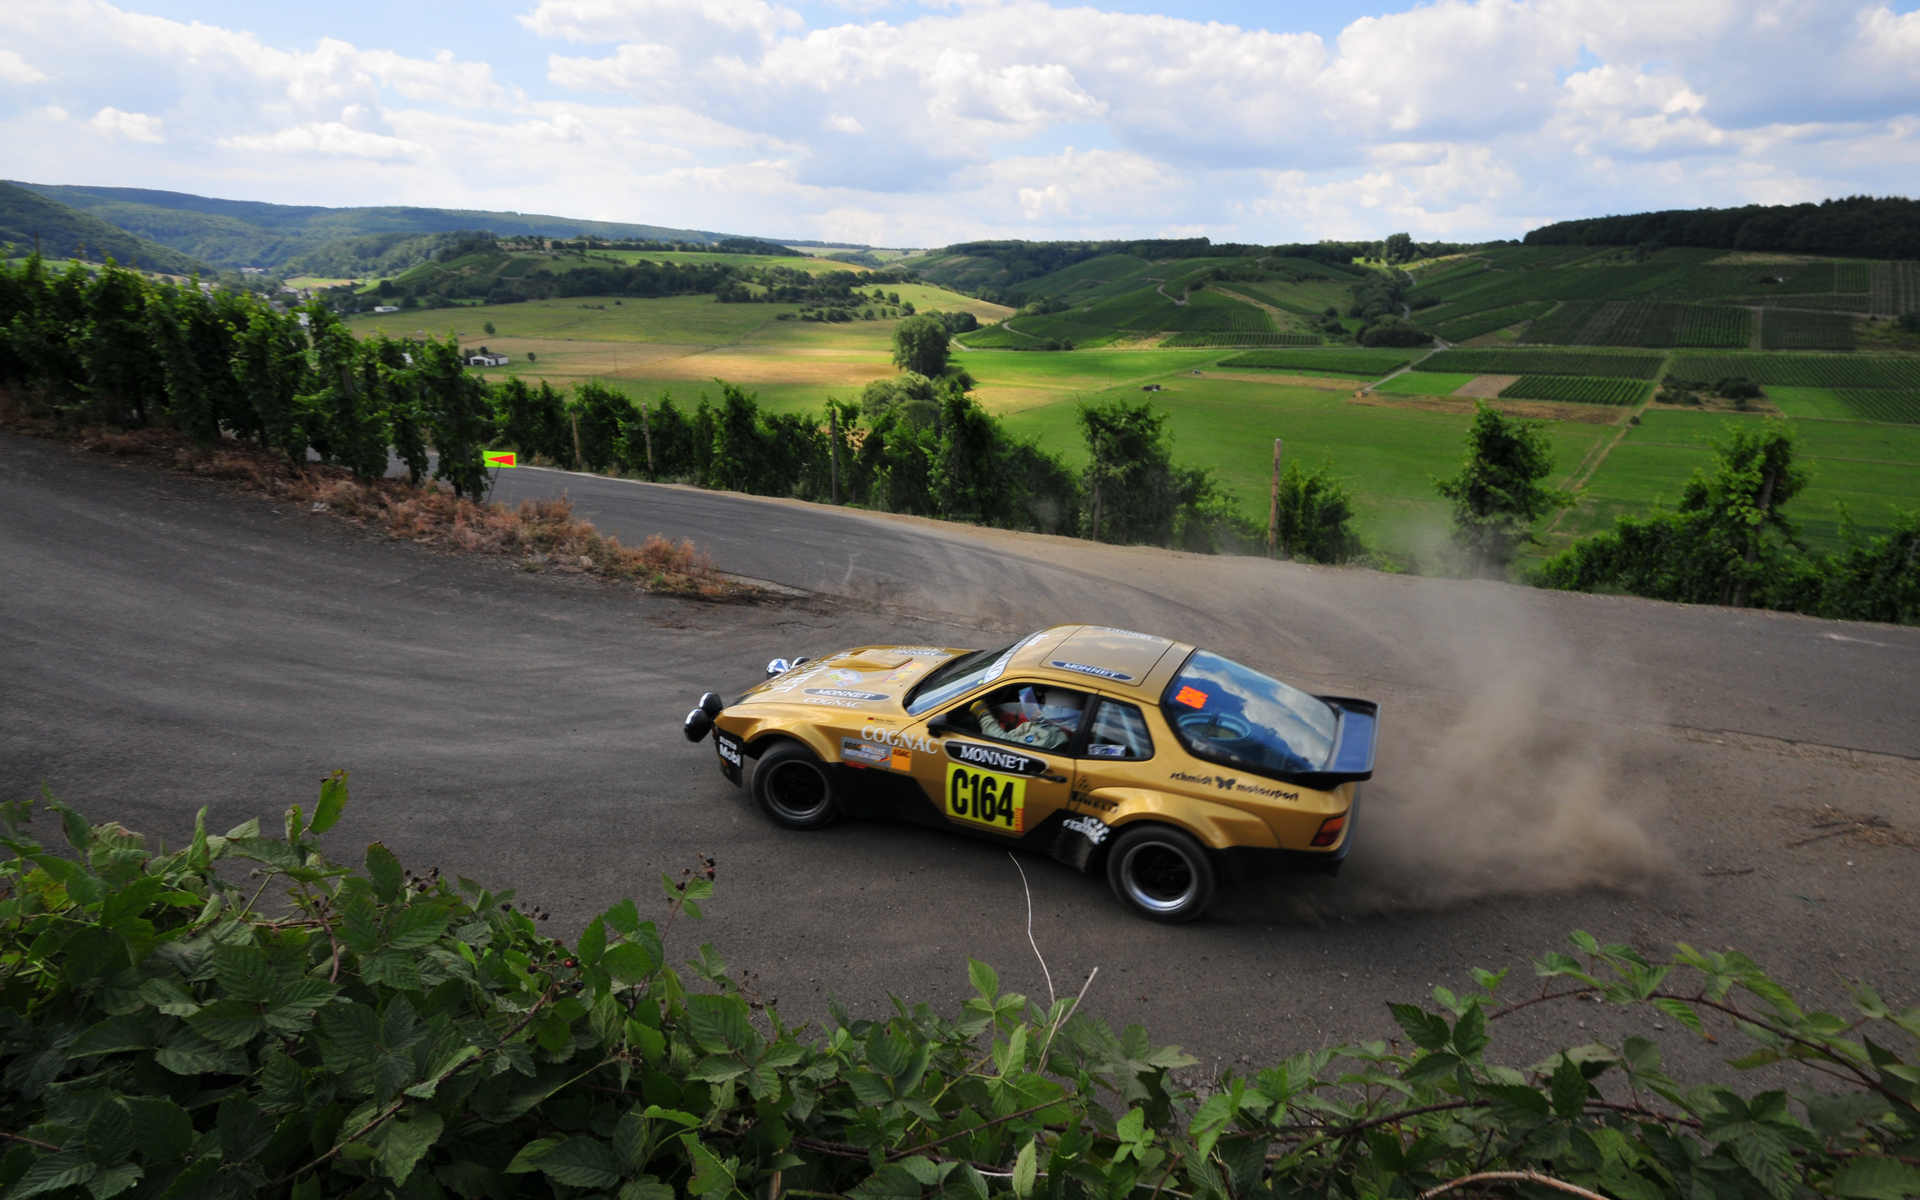 Porsche Rally HD Wallpaper. Download 1920 × 1200, 1 MB